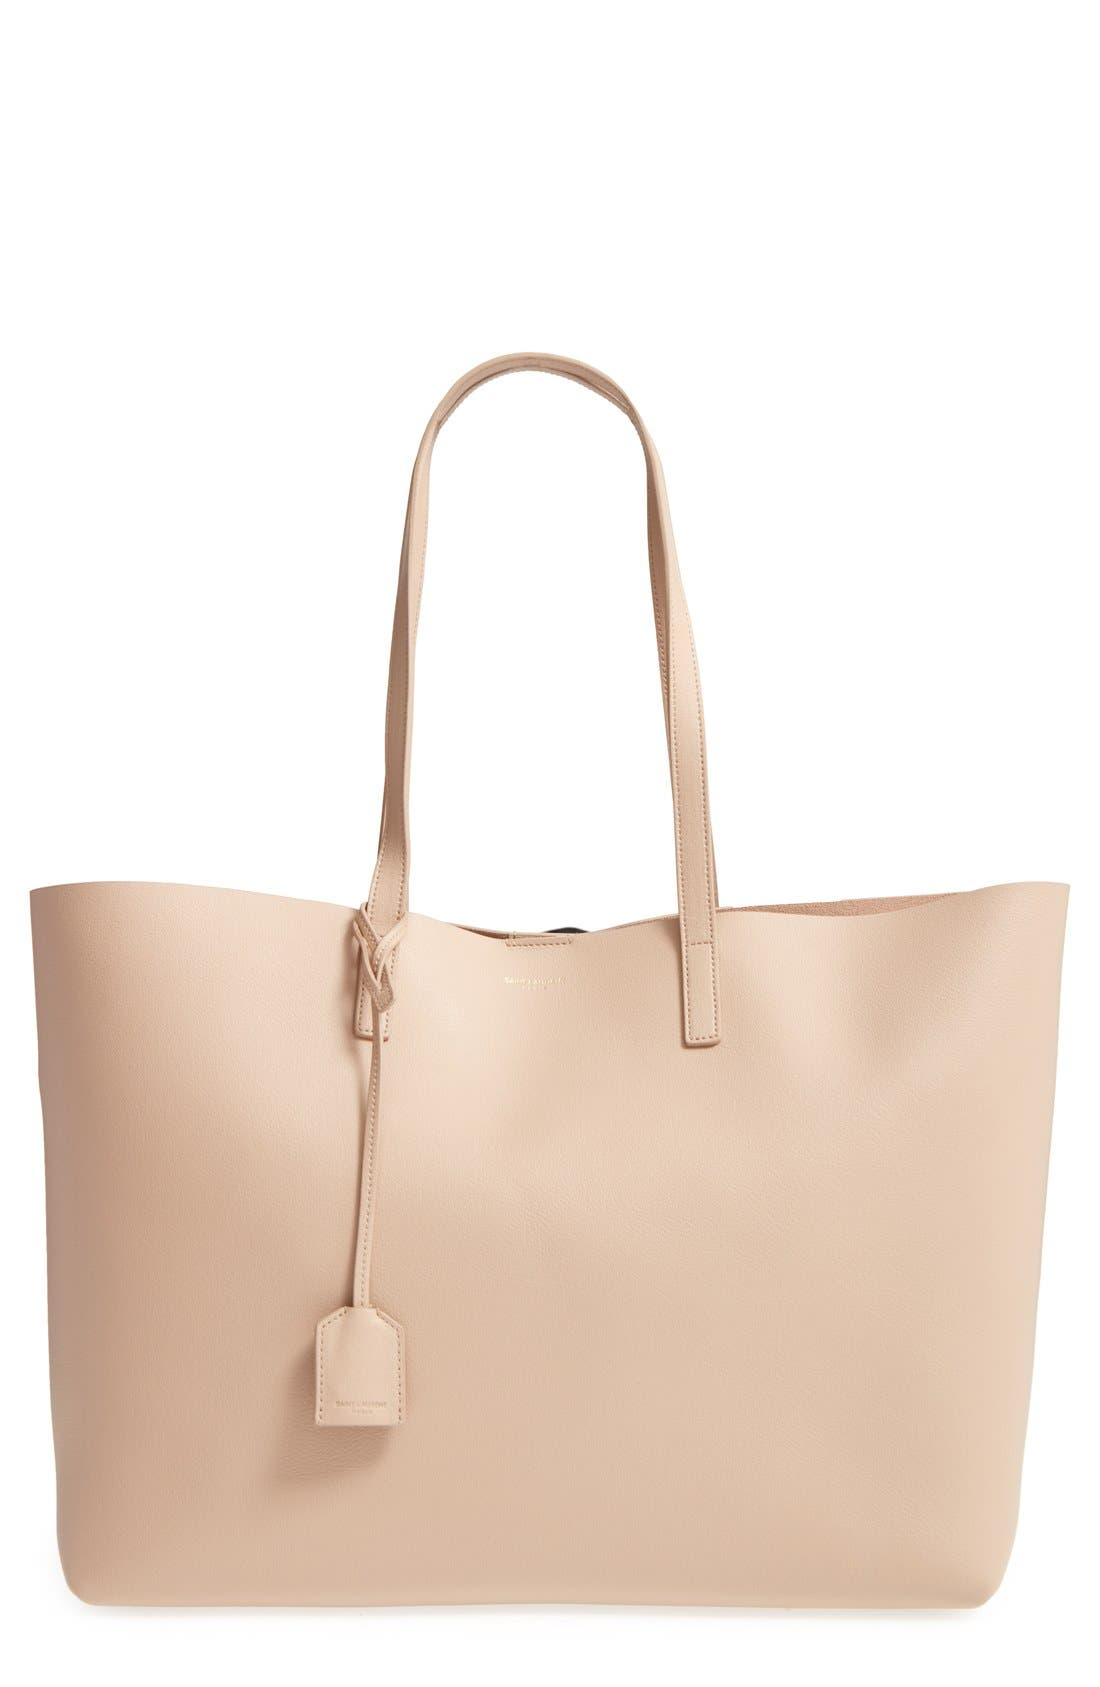 Saint Laurent 'Shopping' Leather Tote